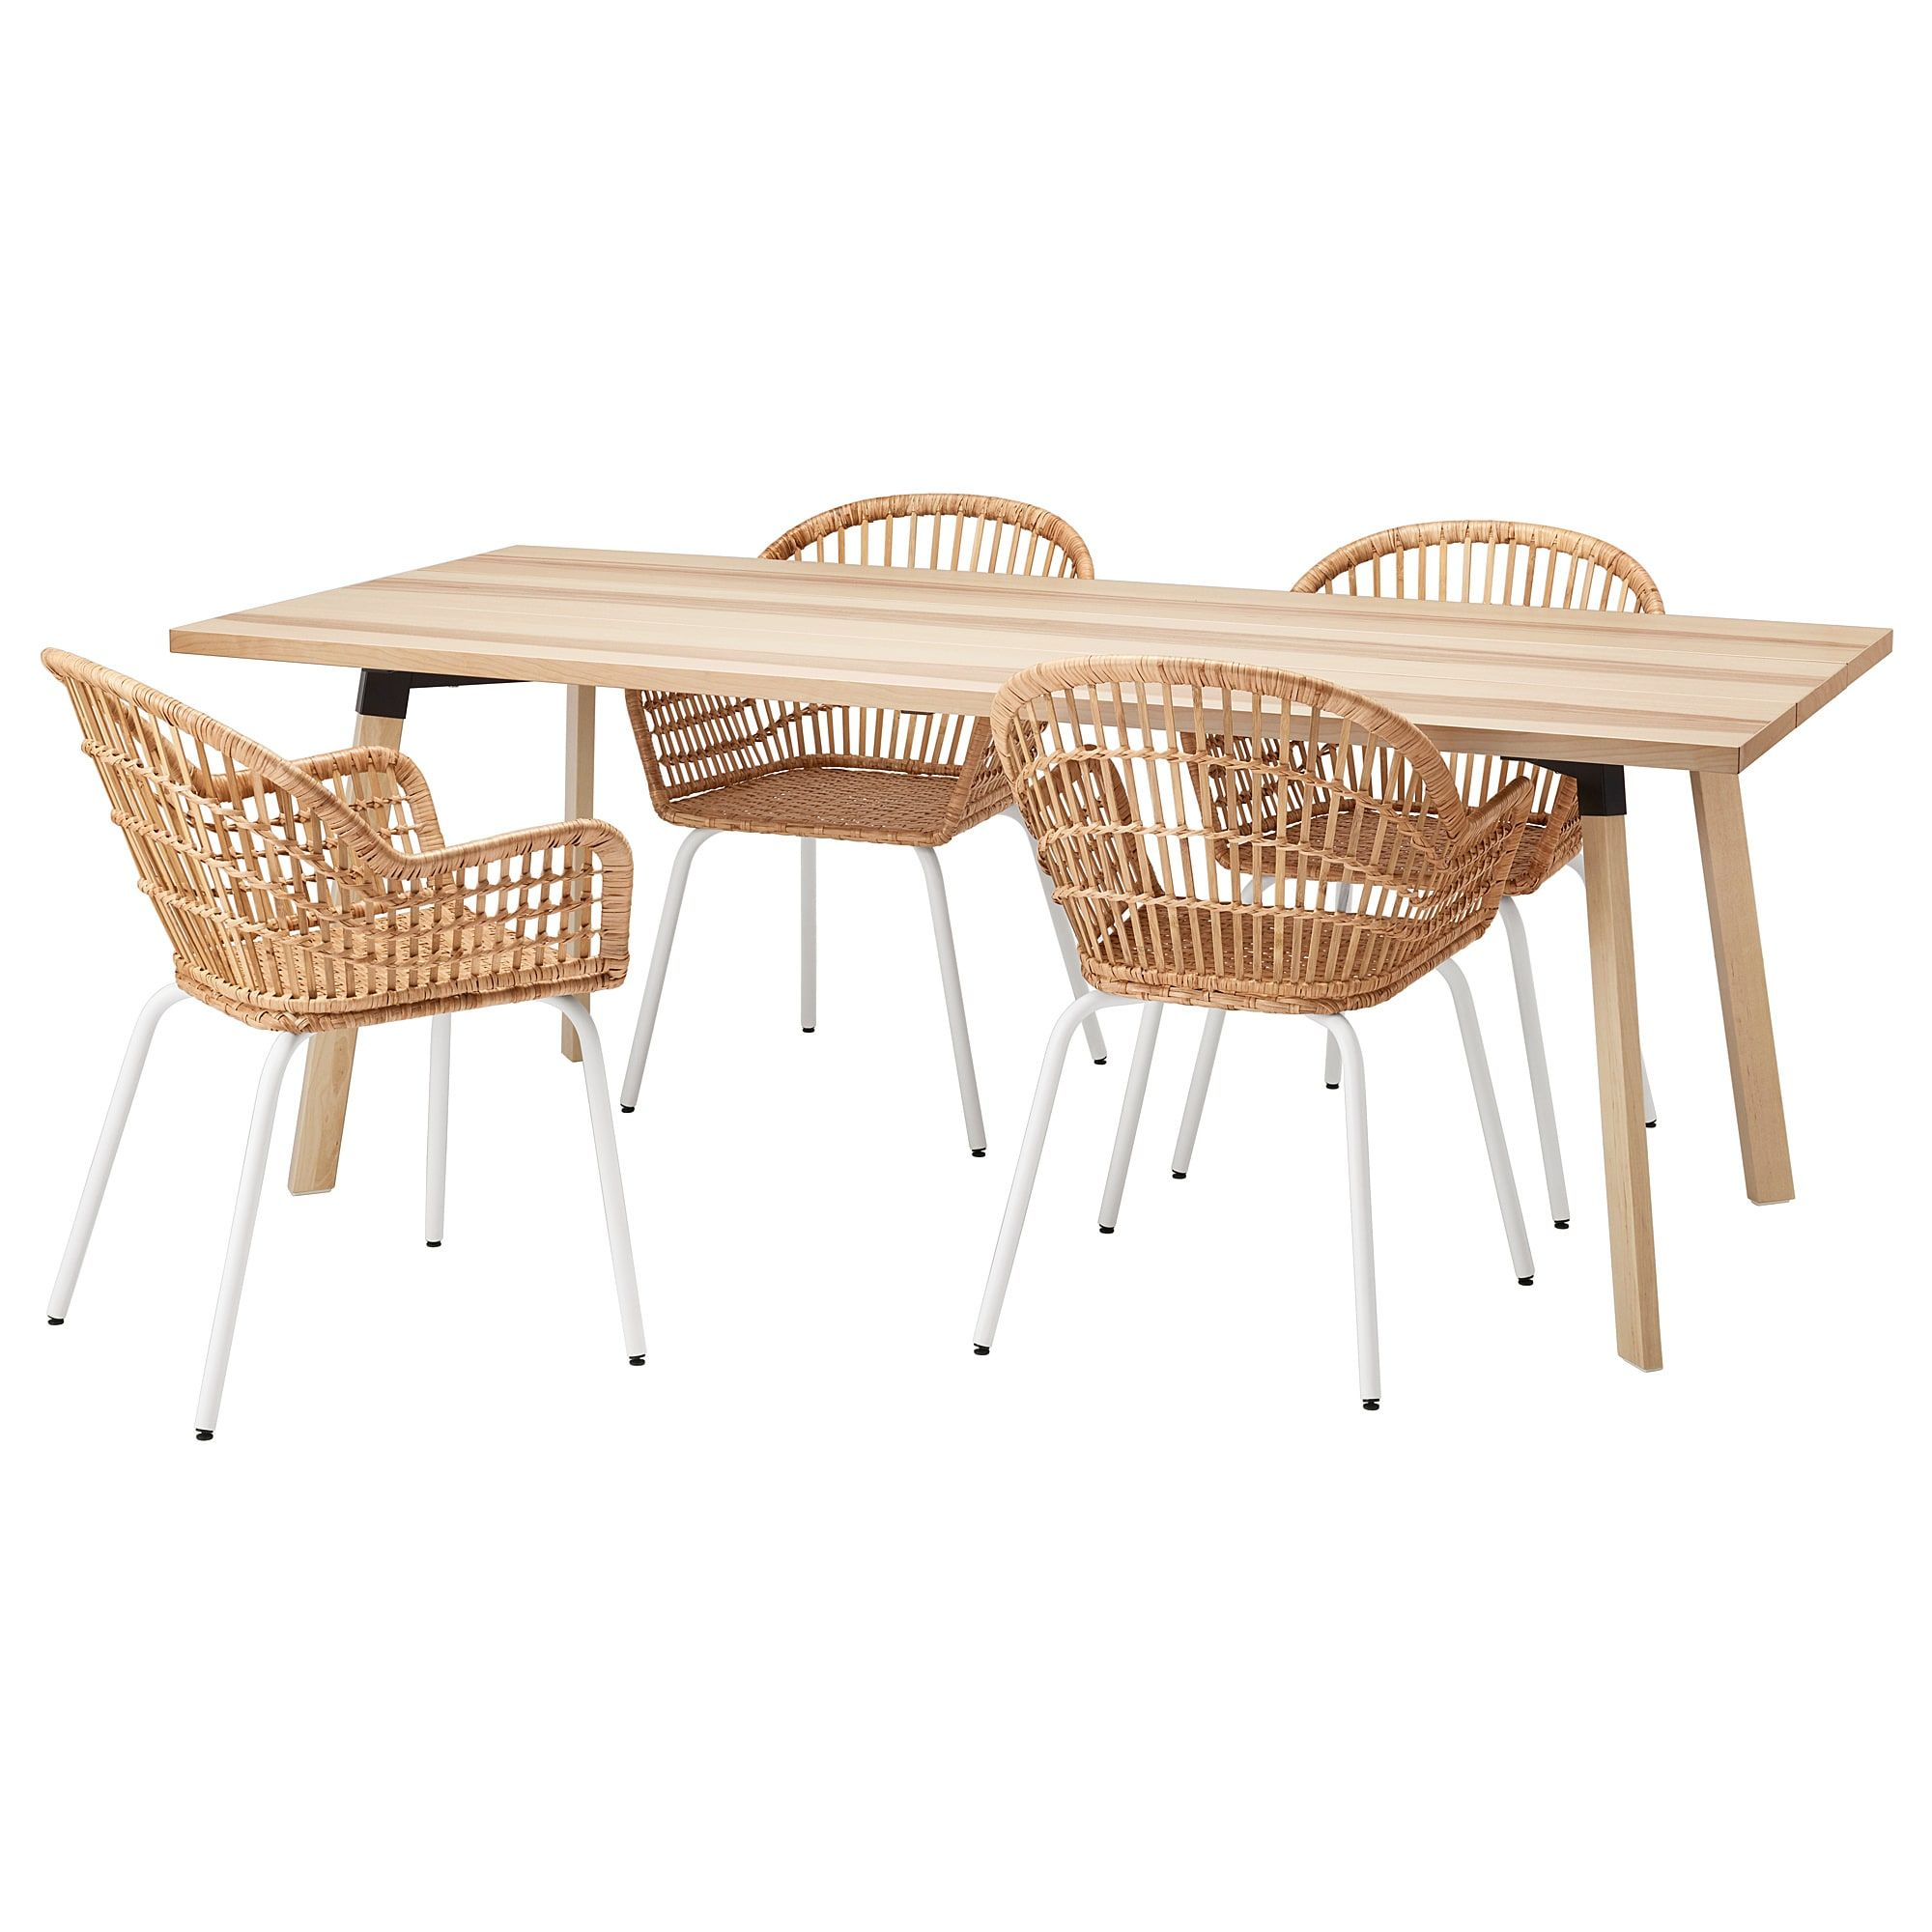 YPPERLIG / NILSOVE Table and 4 chairs, ash, rattan white